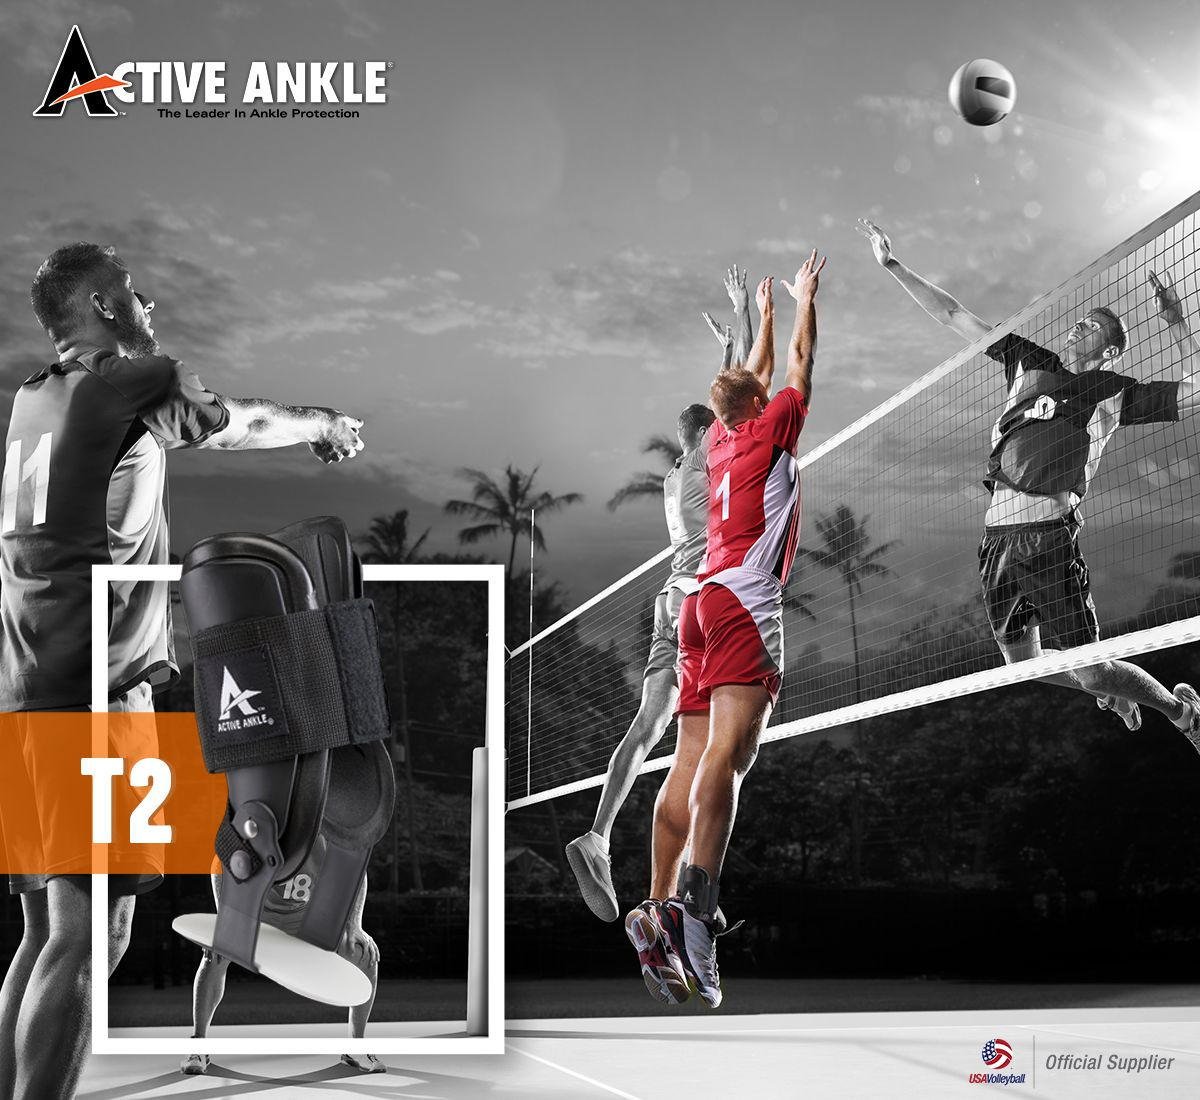 Be Active Brace Company - Active ankle on twitter our t2 ankle brace provides maximum protection without sacrificing flexibility take the court with full support